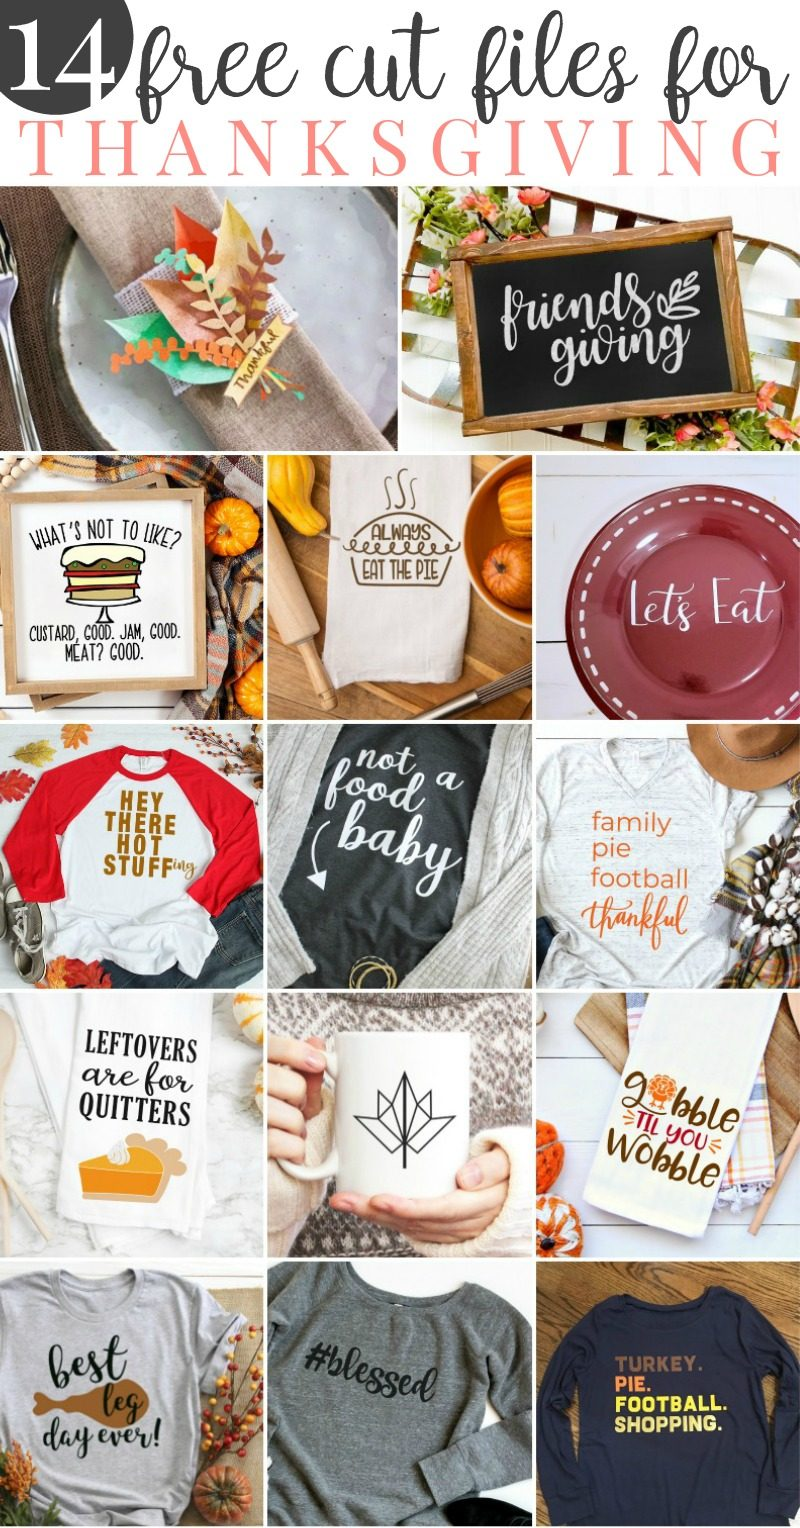 Pull out your Cricut or SIlhouette and celebrate thanksgiving in style! We are sharing 14 free SVG Files that are perfect for Thanksgiving including our own #Blessed file! Make an easy handmade gift or decorate for fall with a fun cutting machine project! #Thanksgiving #Cricut #Silhouette #CricutProject #FreeSVG